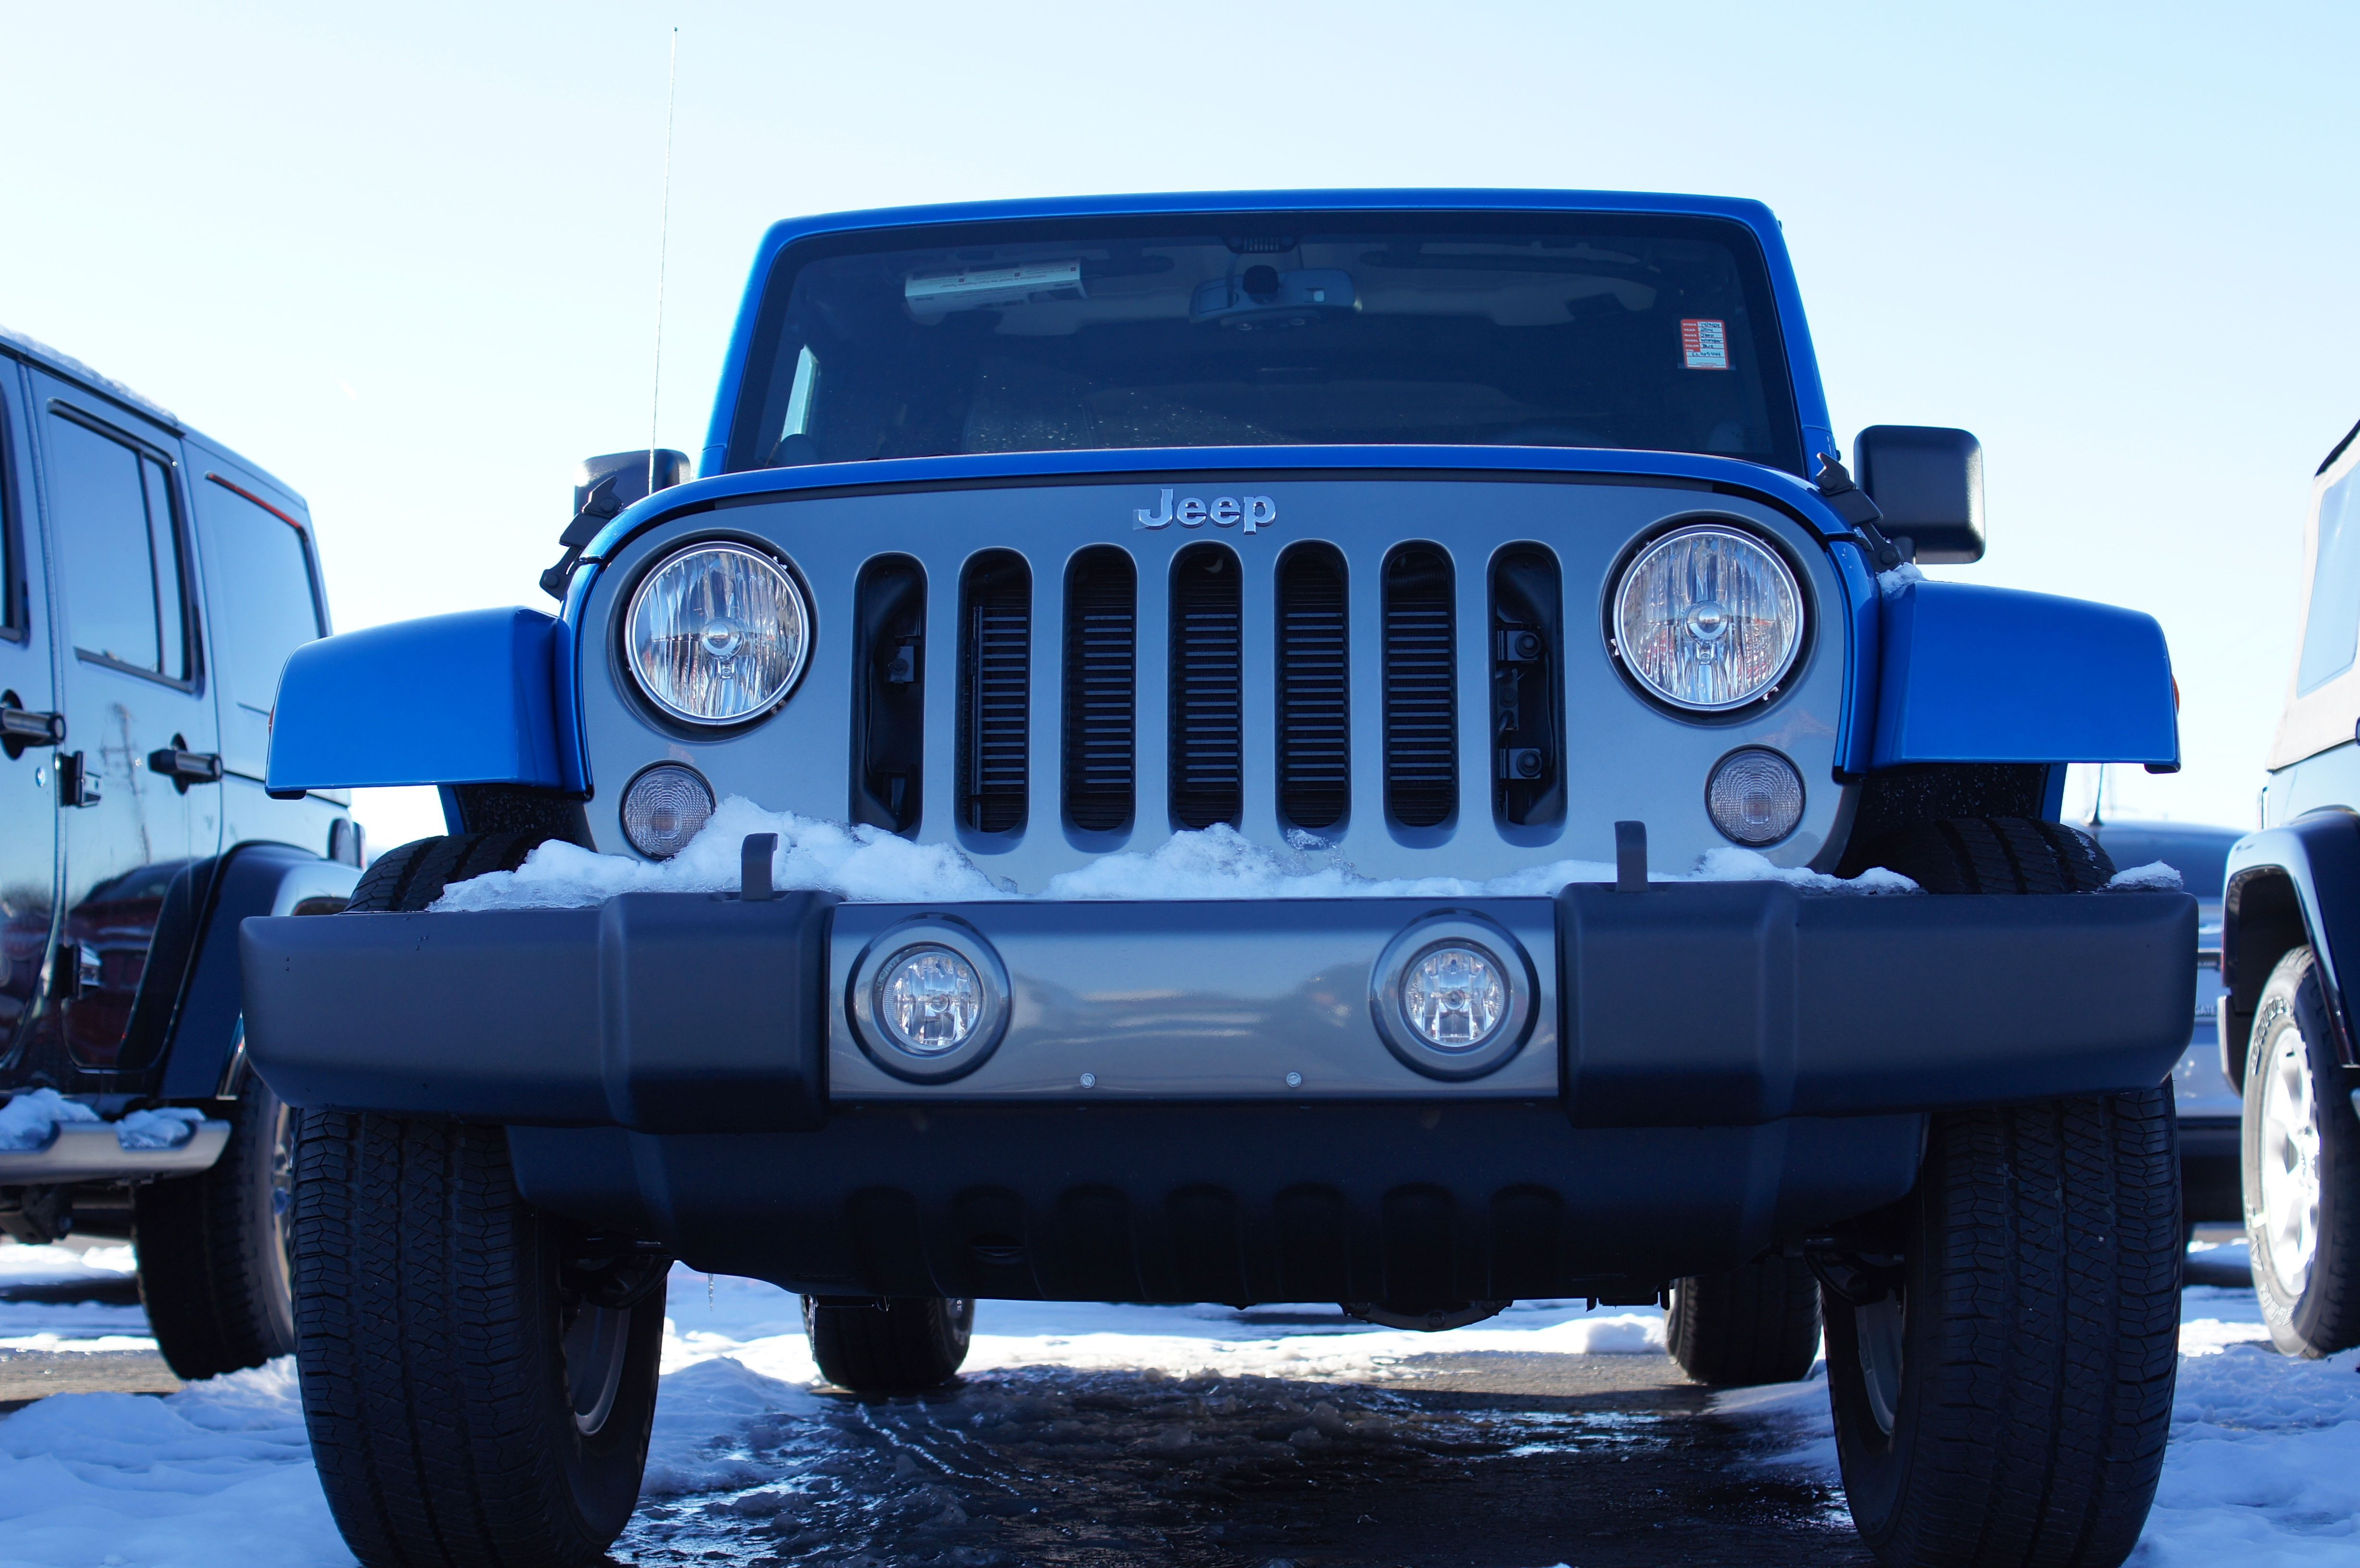 Celebrate Freedom. Jeep Wrangler Unlimited Freedom Edition